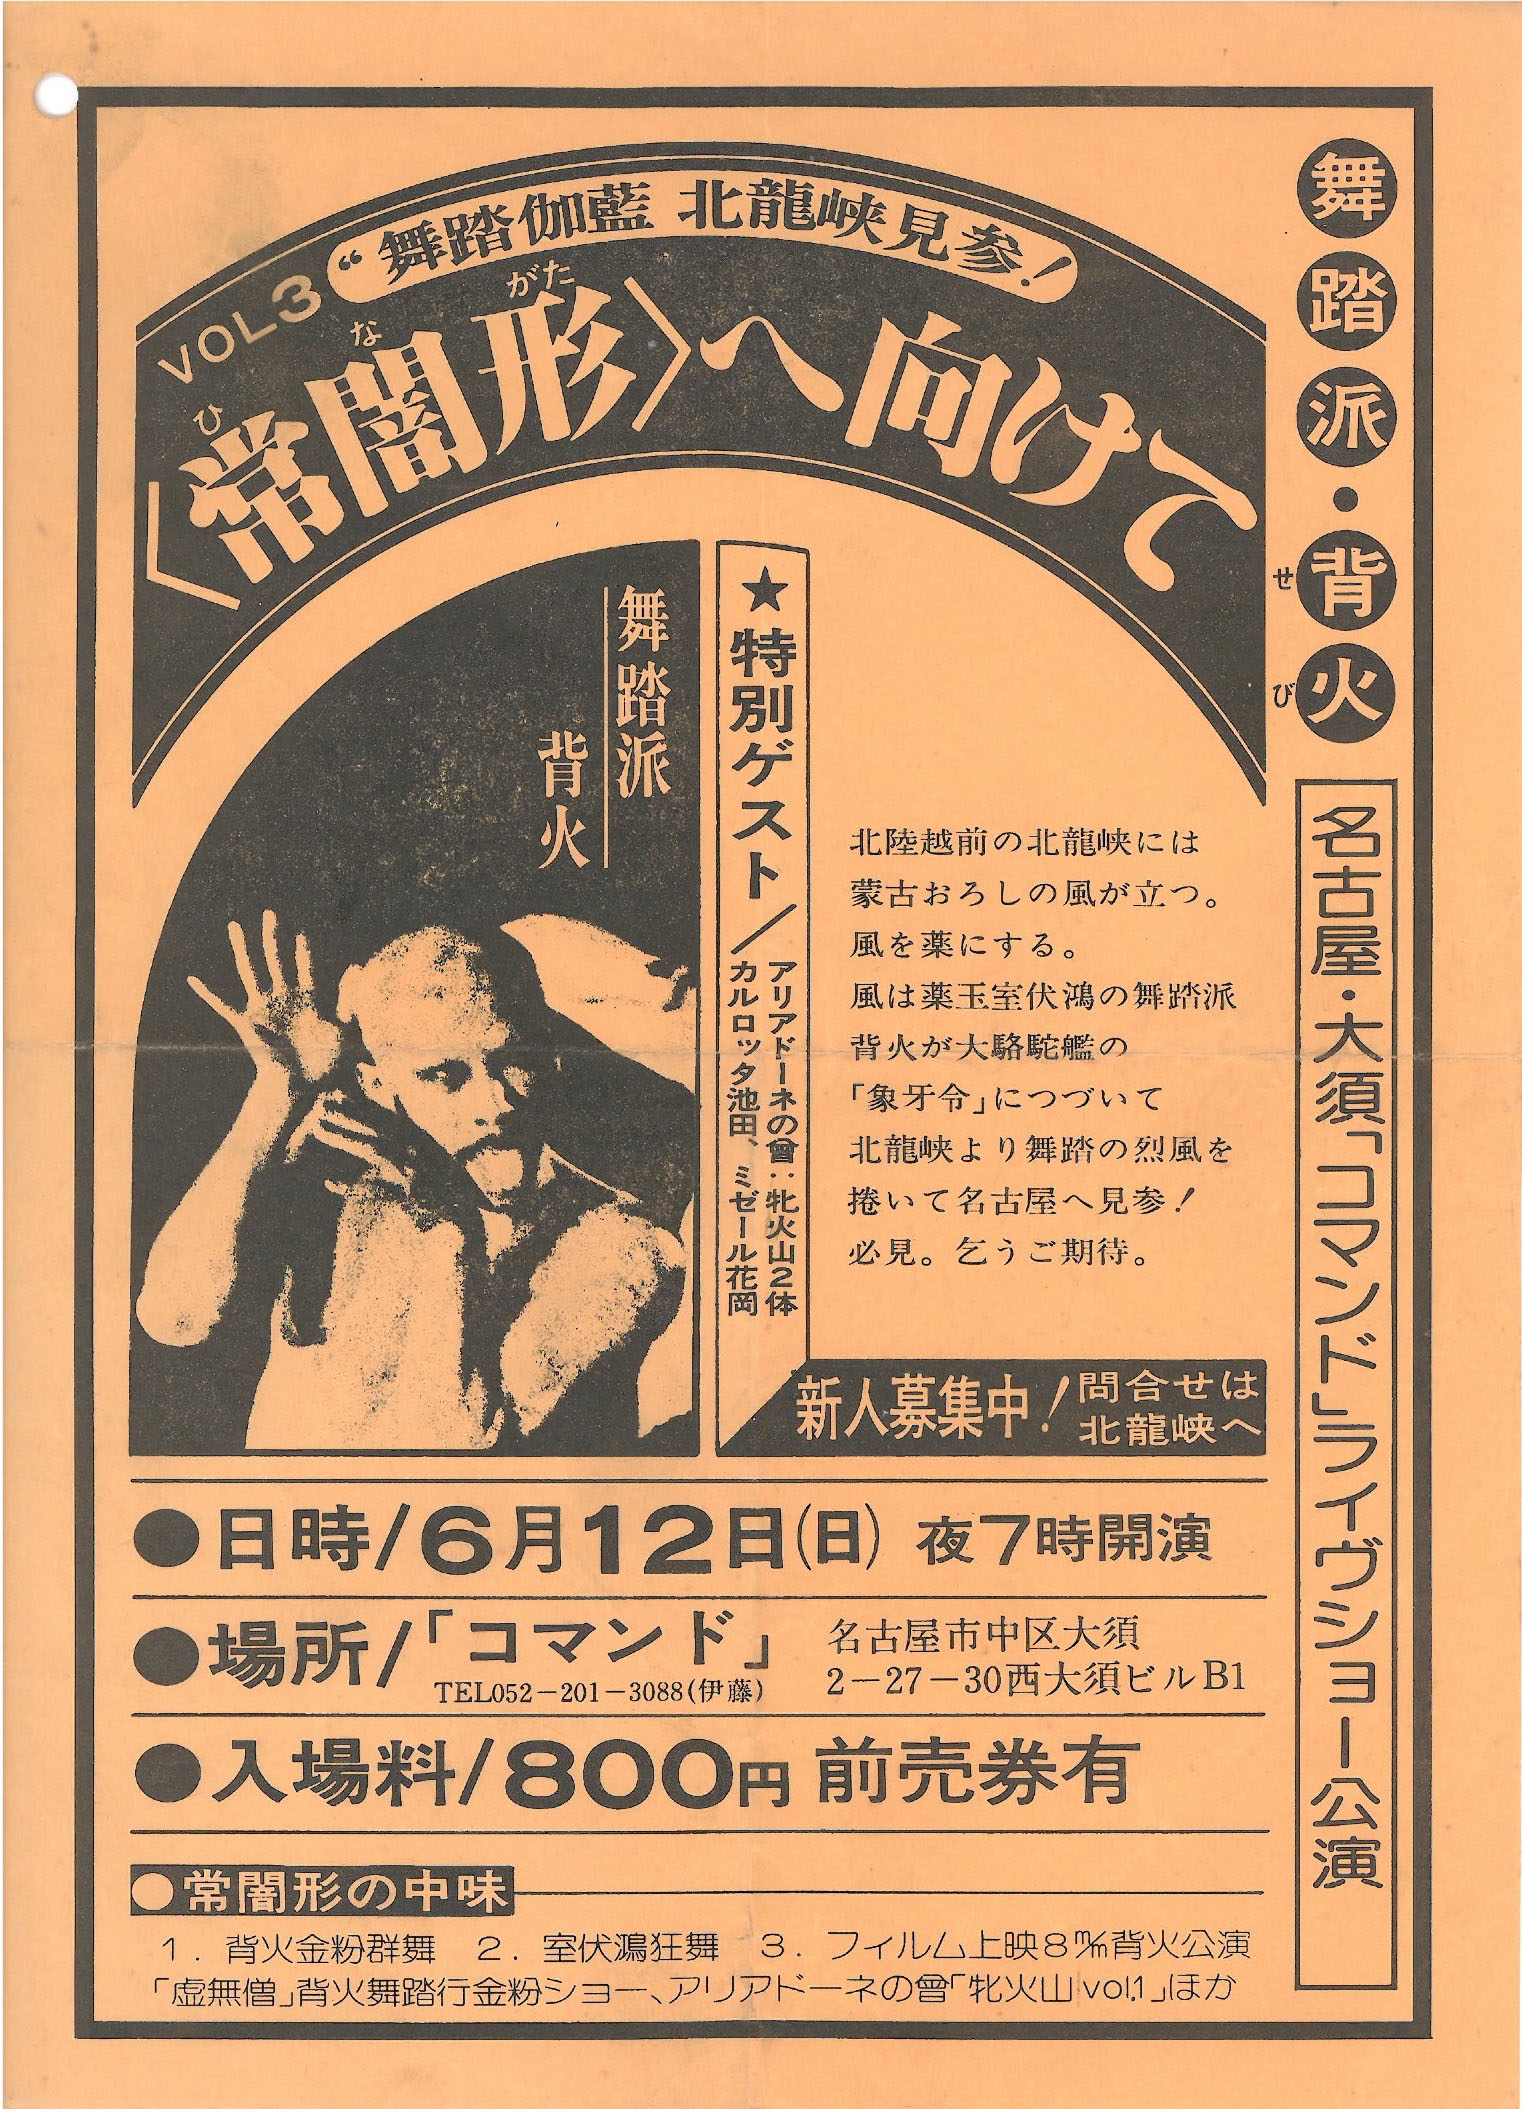 Butoh ha Sebi : Live show performance 